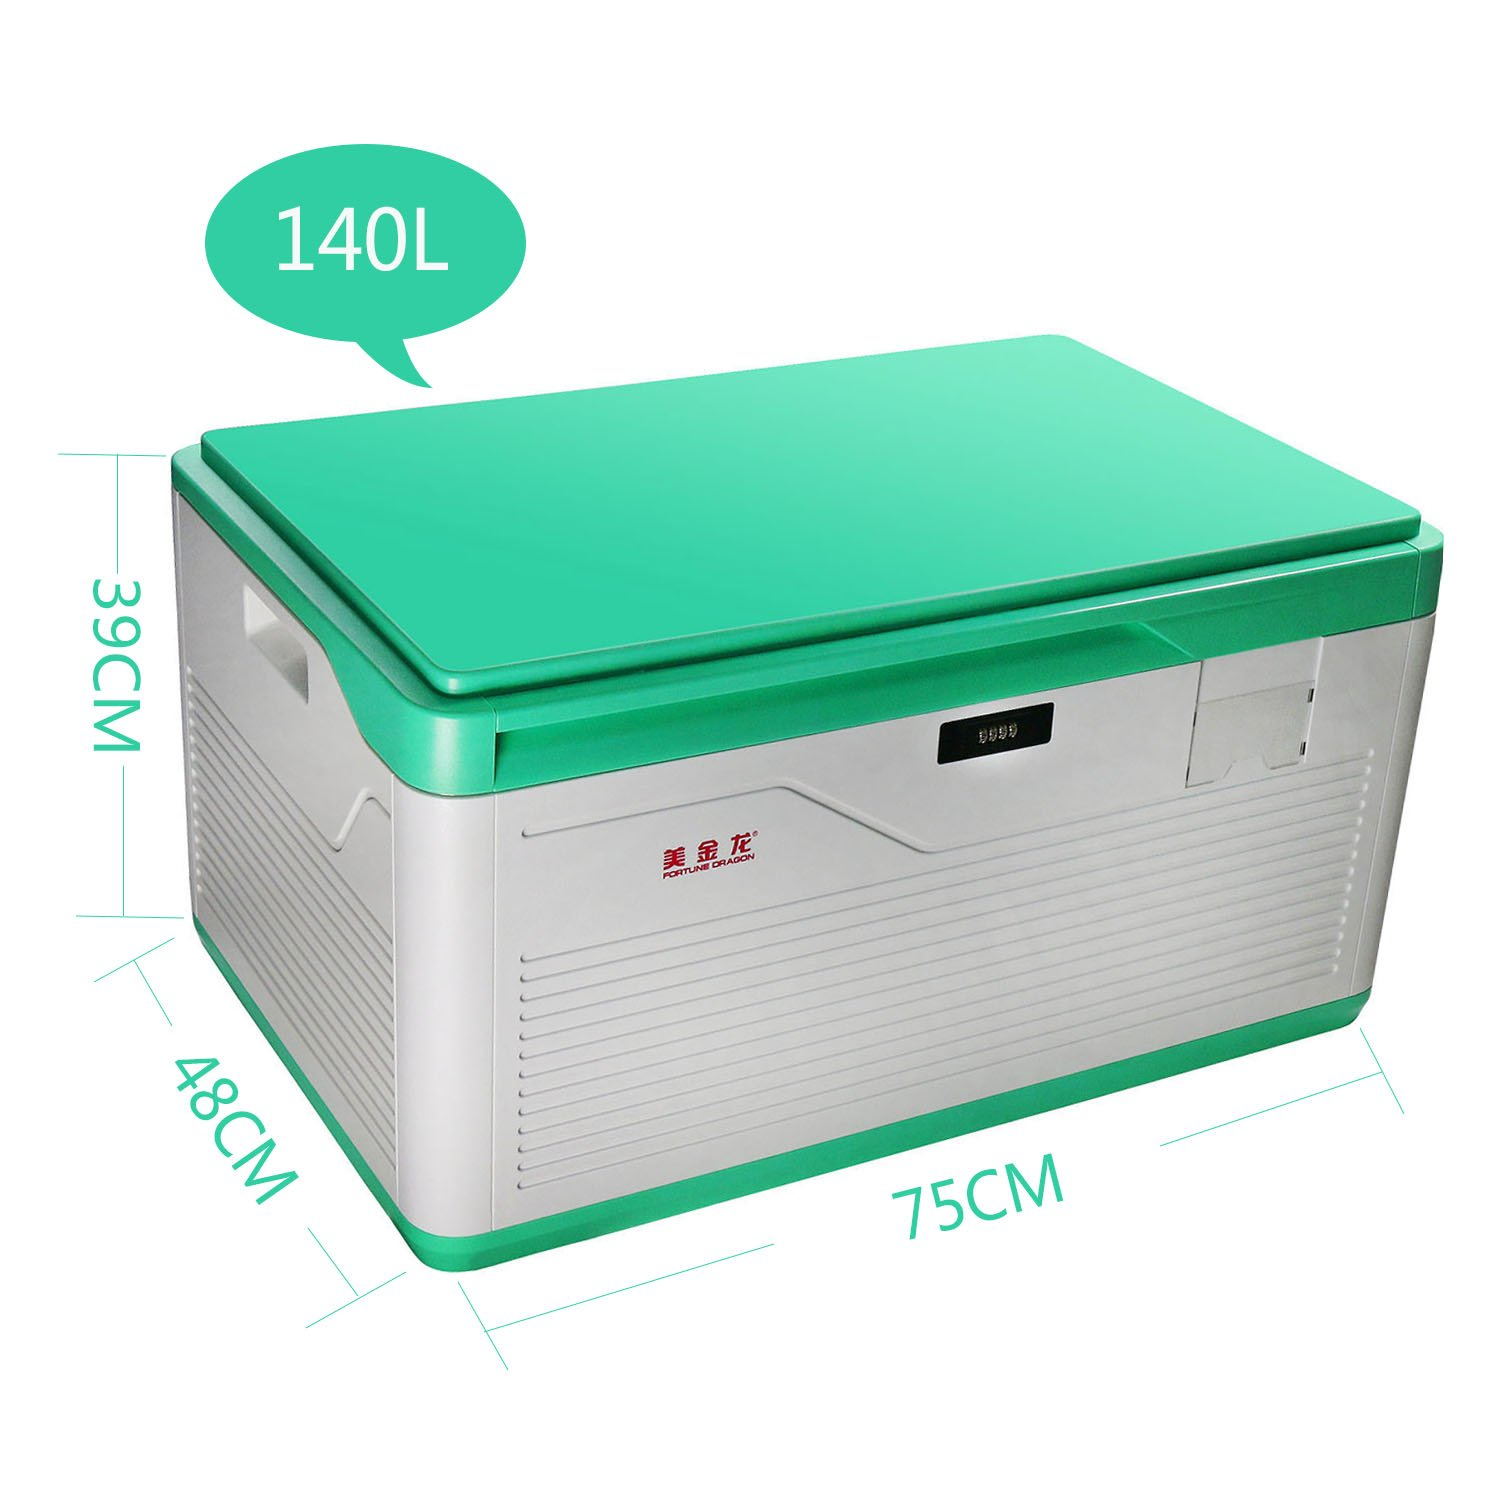 140 Liter Storage Box with Lid, EVERTOP Combination Lock Storage Container Multifunctional ABS Plastic Stackable Large Capacity Storage Bins for Home, Office, Kitchen, School, Institute, Green